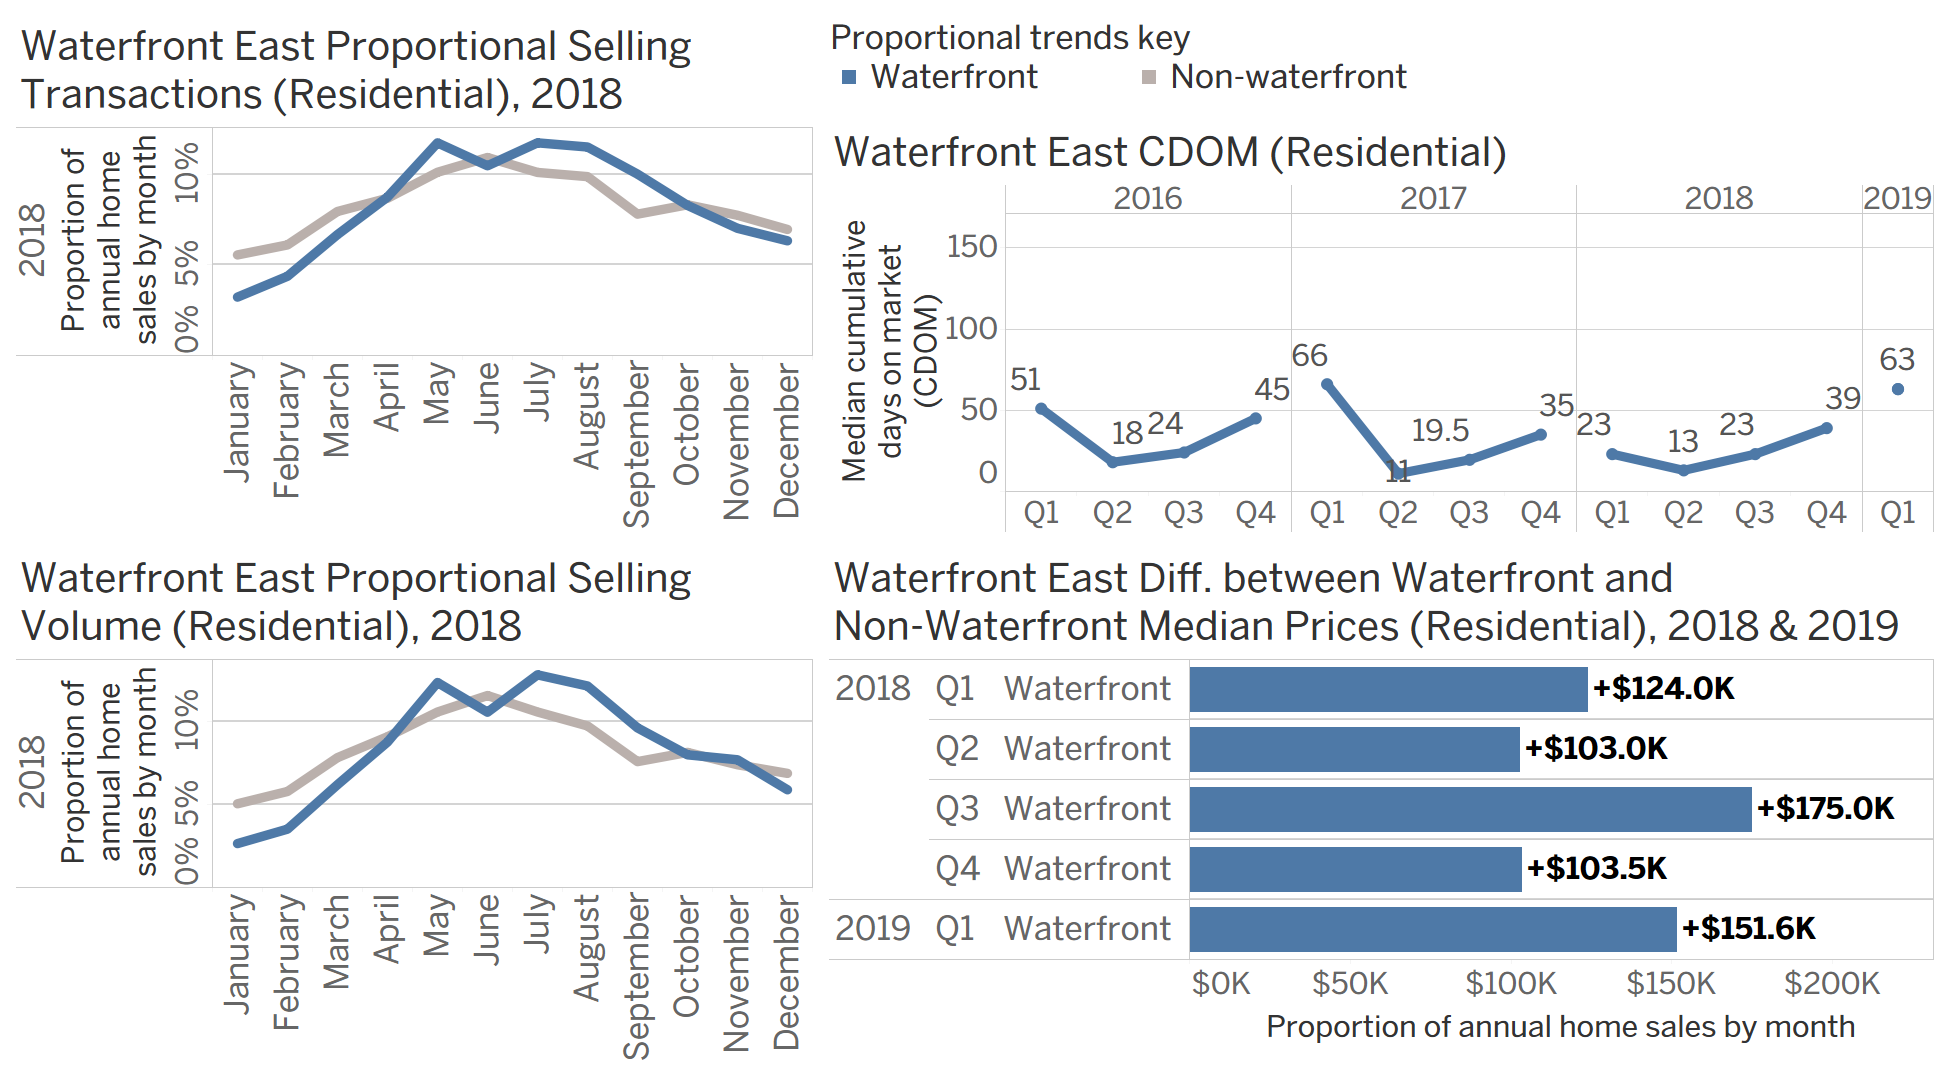 Chart Group B: seasonal waterfront transaction data for Waterfront East.